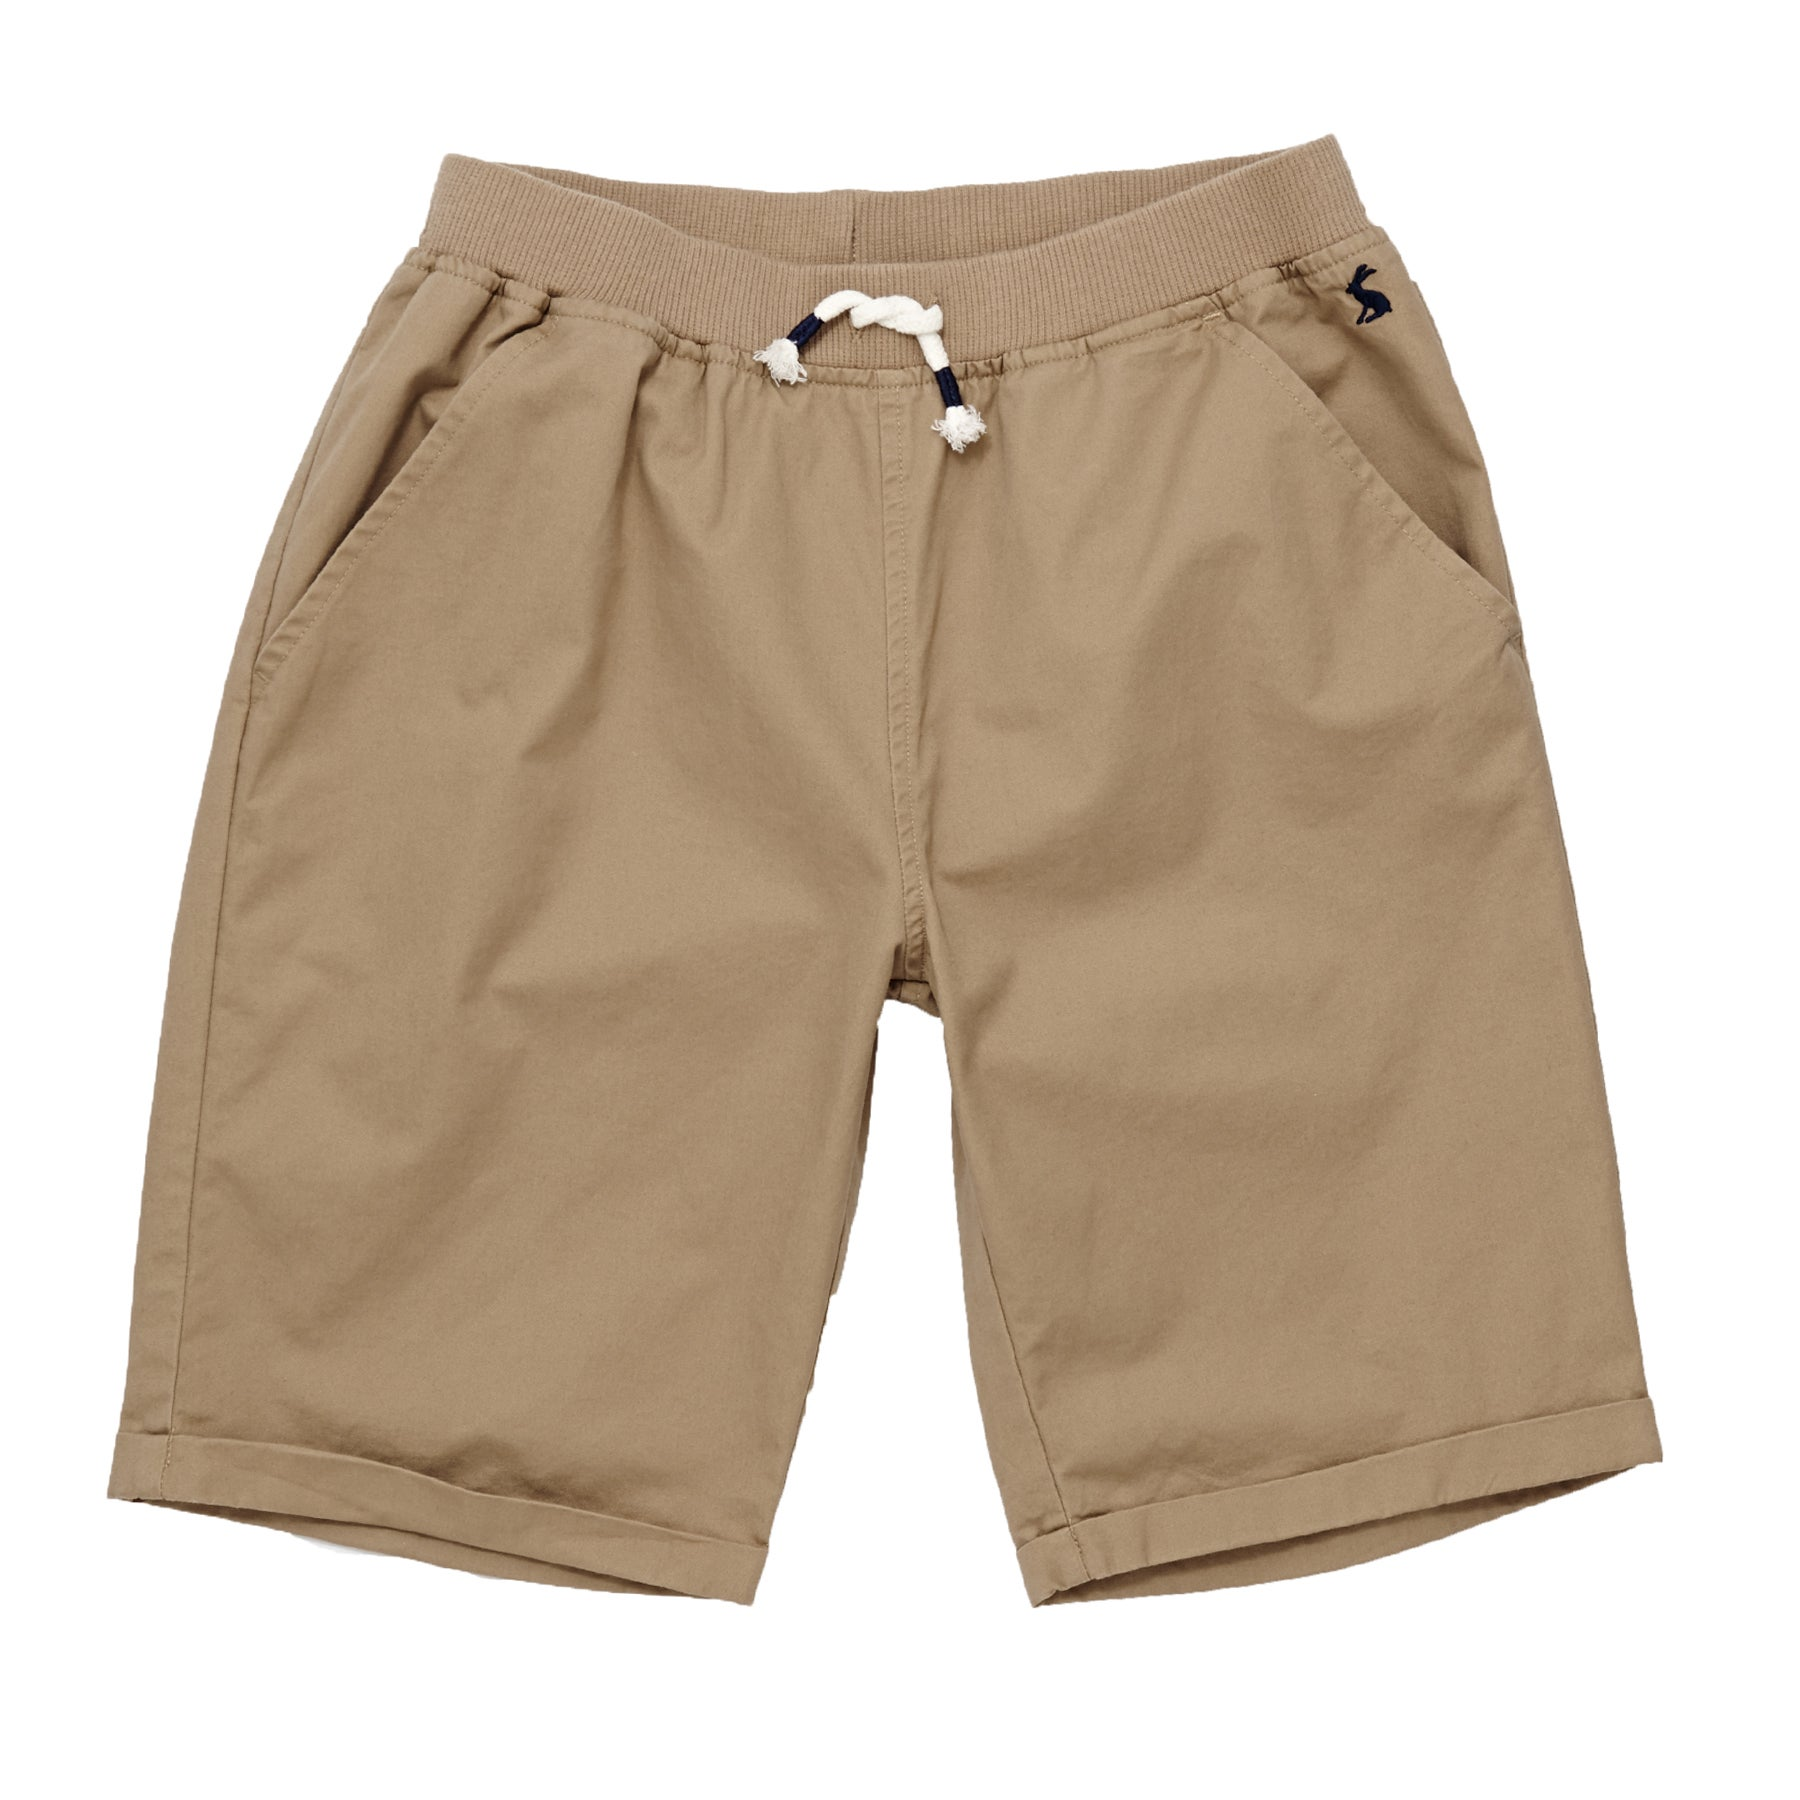 Joules Huey Boys Walk Shorts - Sand